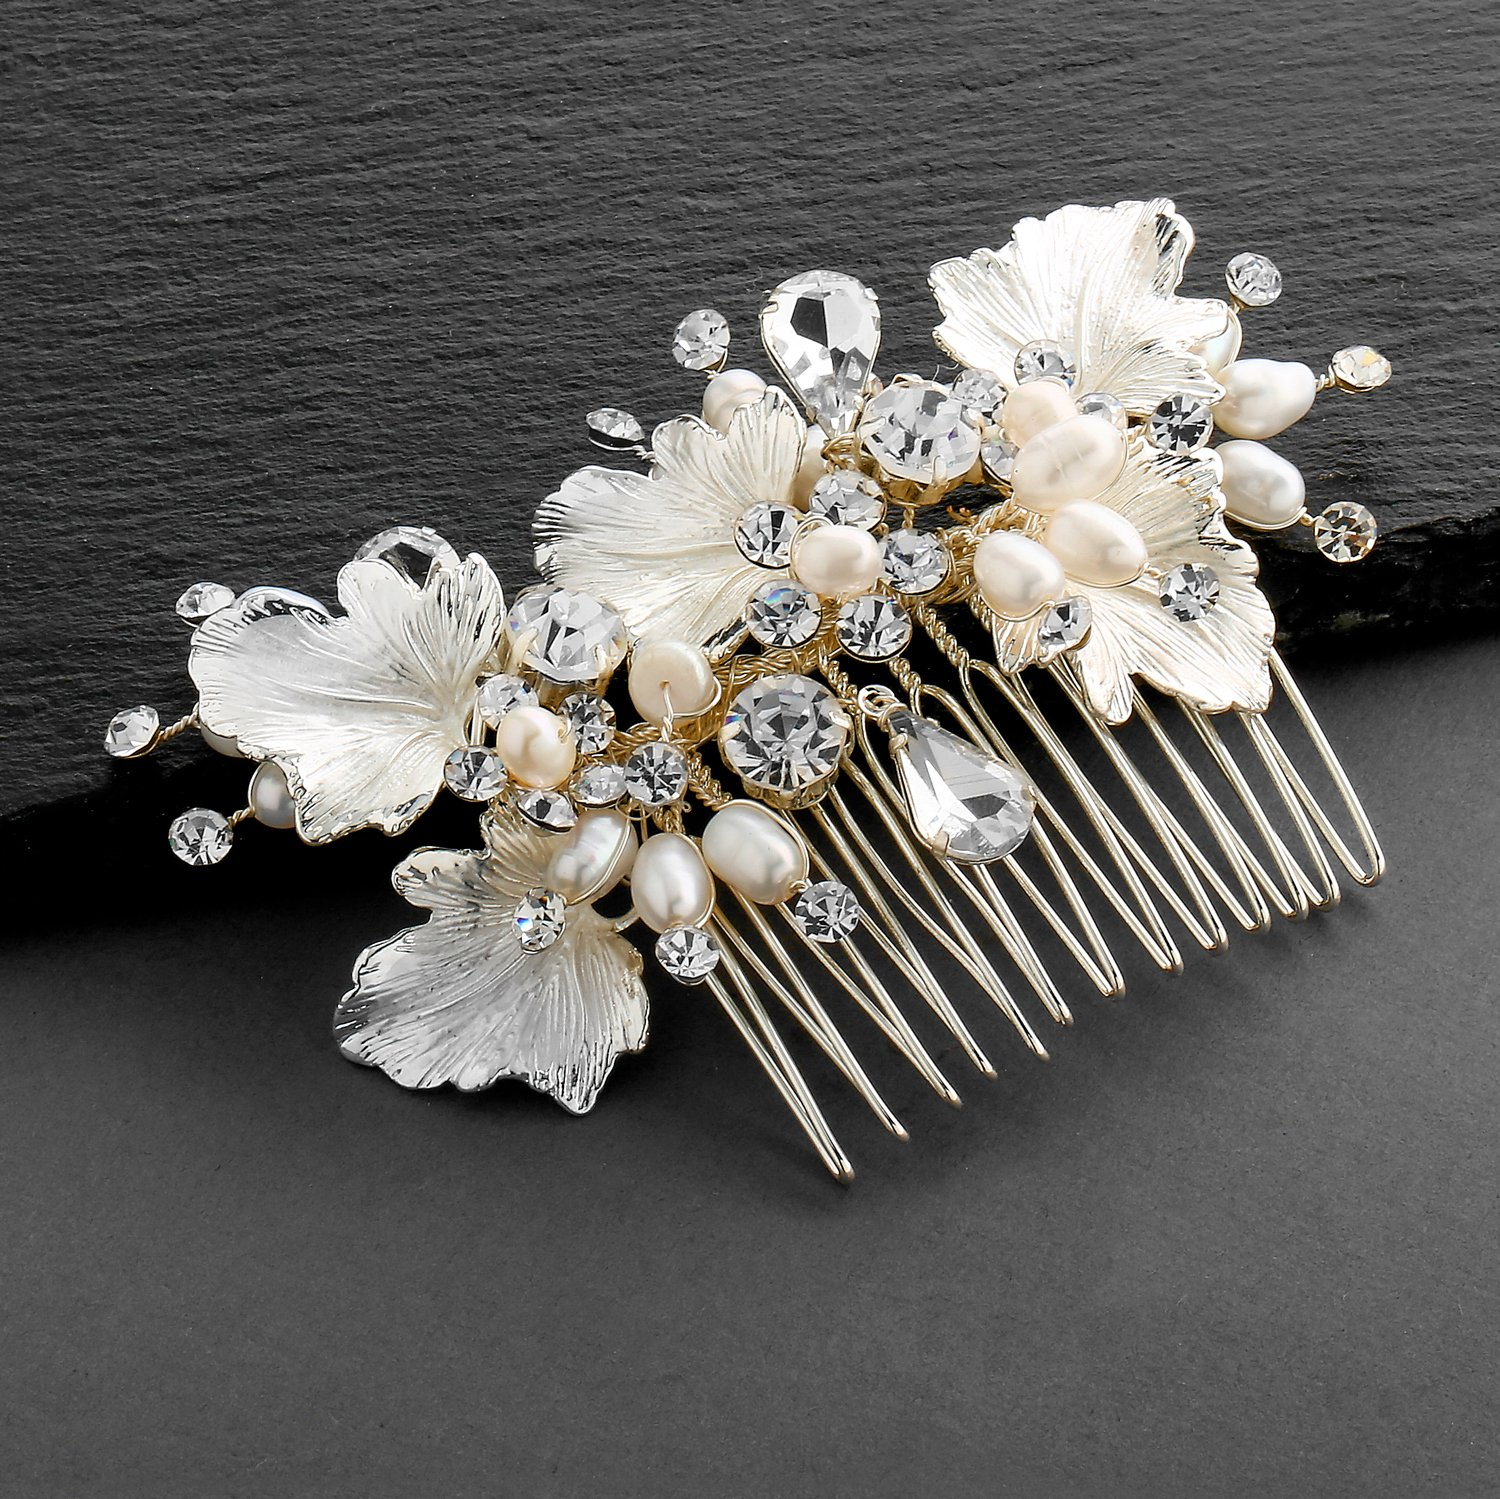 Mariell Couture Bridal Hair Comb with Hand Painted Gold Leaves, Freshwater Pearls and Crystals by Mariell (Image #6)